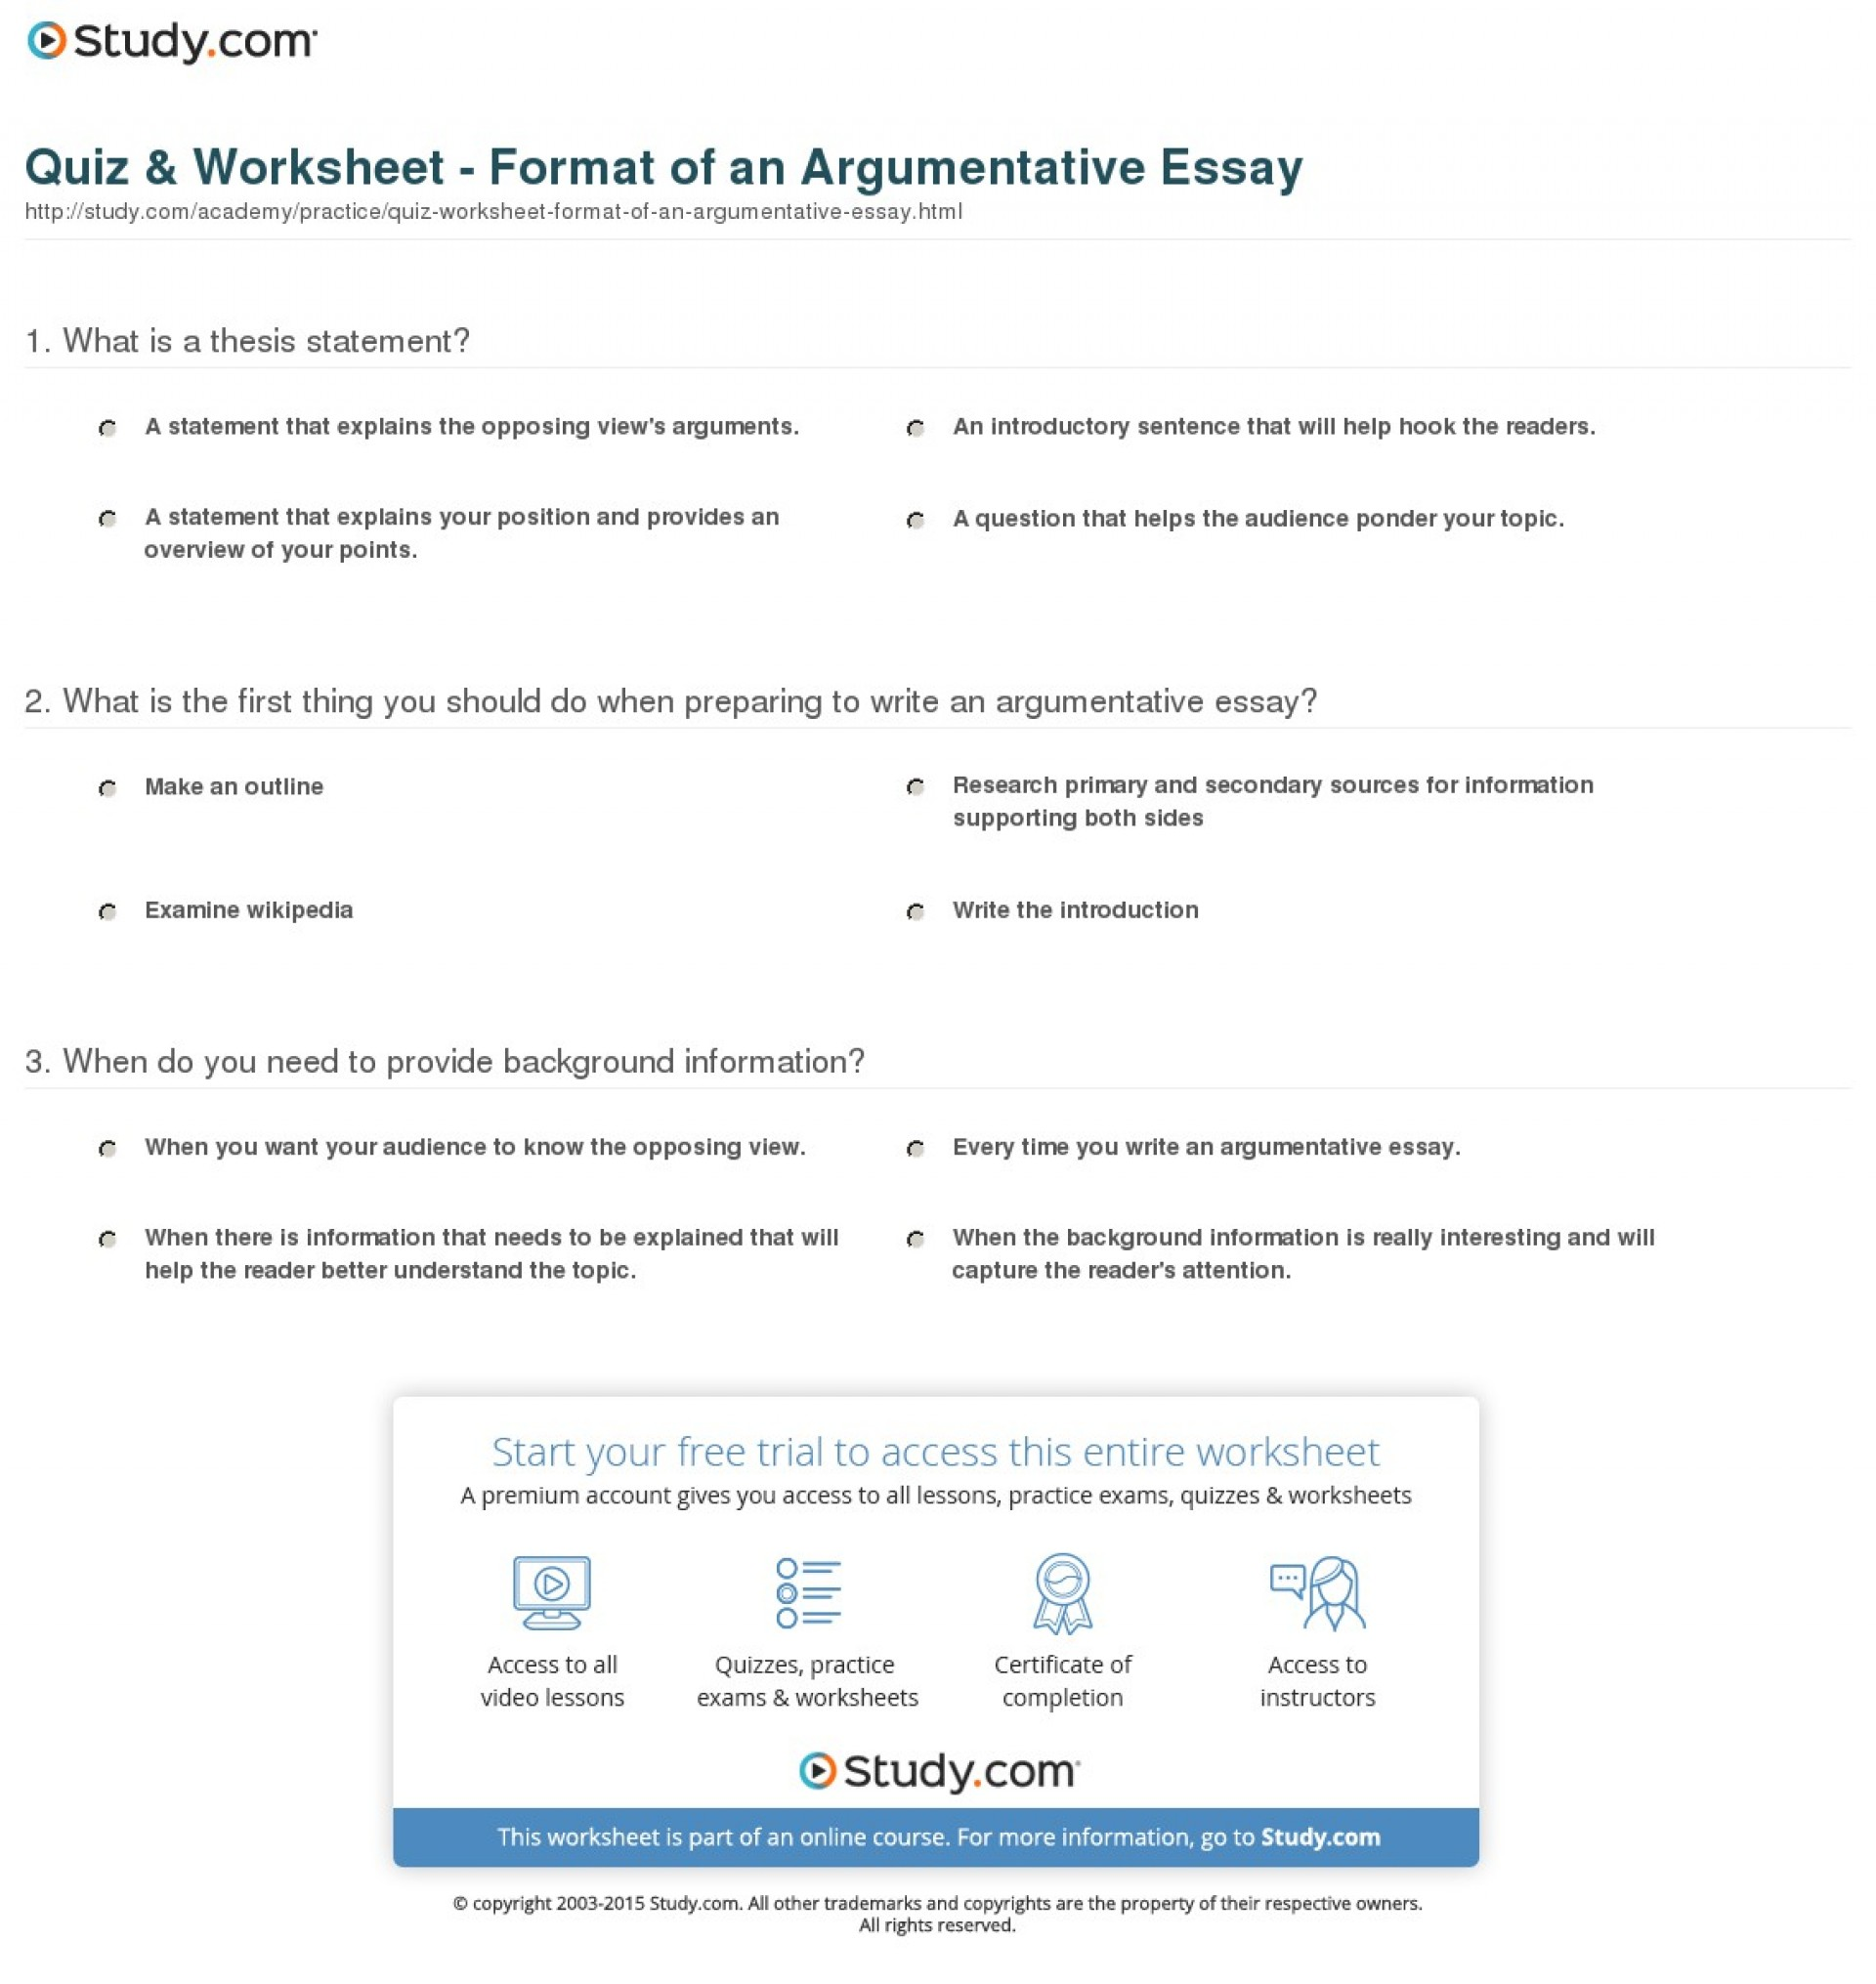 015 Argumentative Essay Format Quiz Worksheet Of An Best Template Outline Sample Pdf 1920